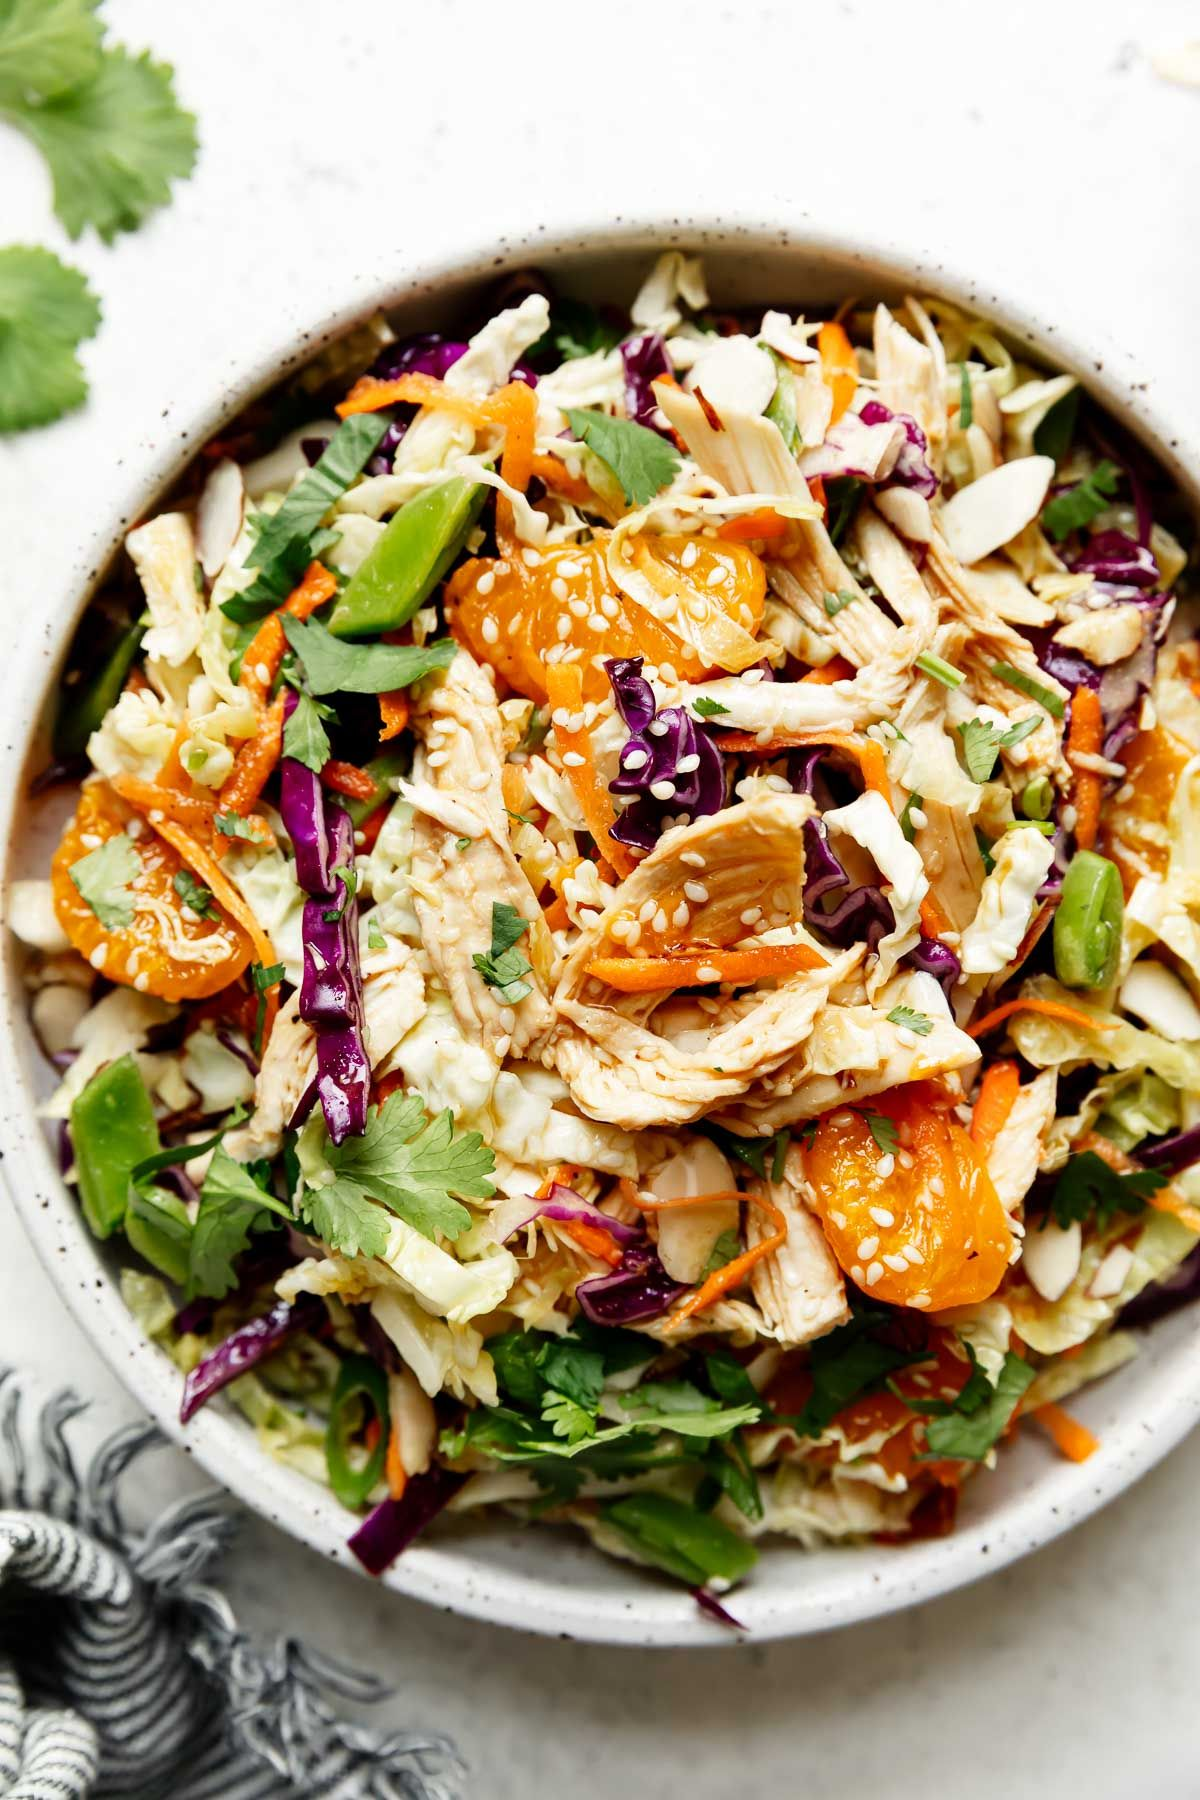 Chinese Inspired Chicken Salad Recipe In 2021 Chinese Chicken Salad Recipe Chicken Salad Salad Recipes